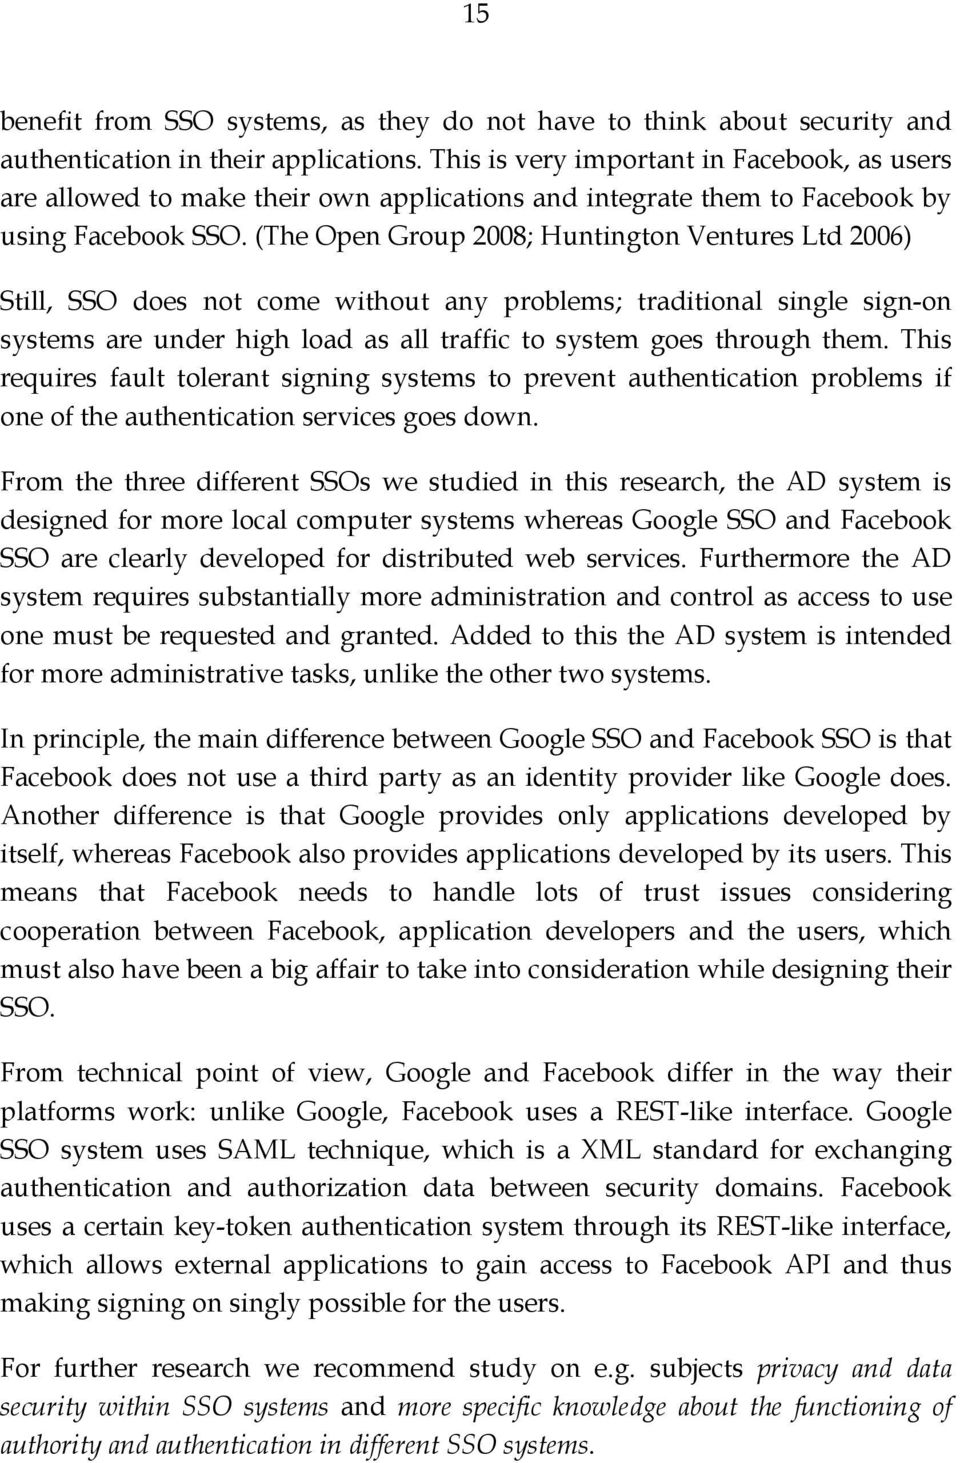 (The Open Group 2008; Huntington Ventures Ltd 2006) Still, SSO does not come without any problems; traditional single sign-on systems are under high load as all traffic to system goes through them.